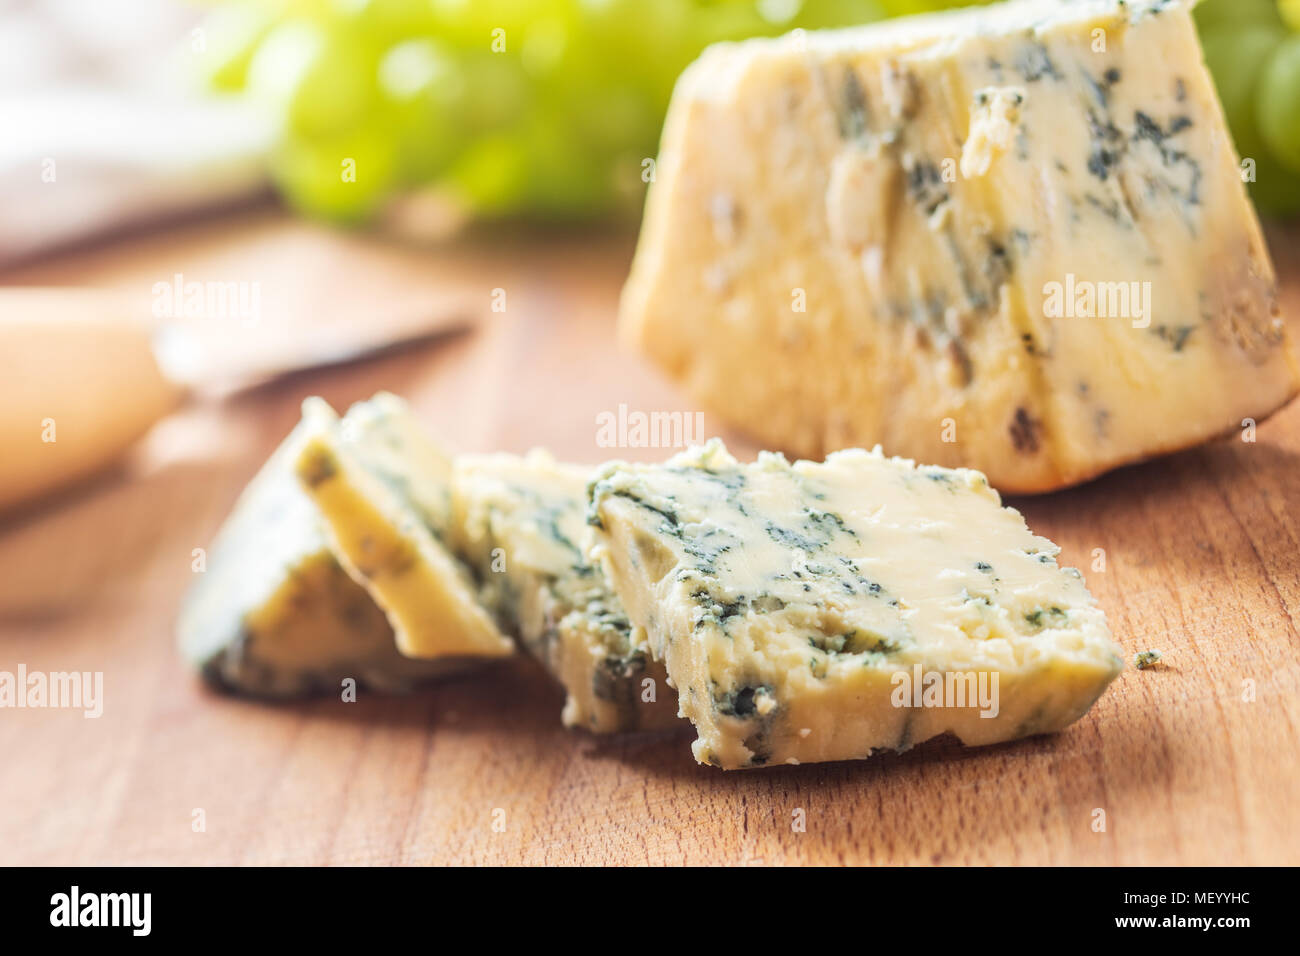 Tasty blue cheese on old kitchen table. - Stock Image